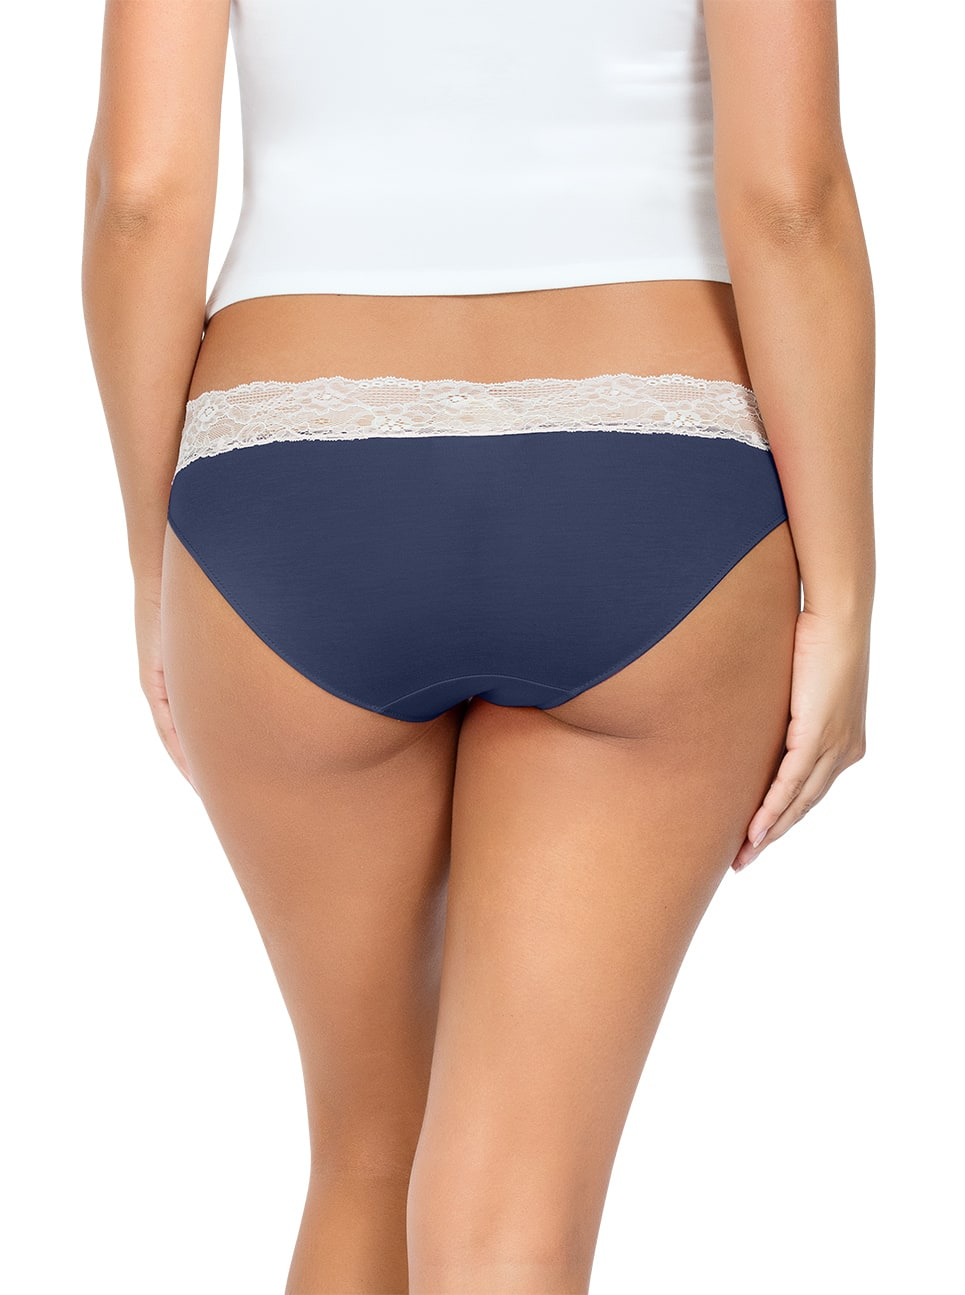 PARFAIT ParfaitPanty SoEssential BikiniPP303 NavyBlue Back close - Panty So Essential Bikini- Navy - PP303